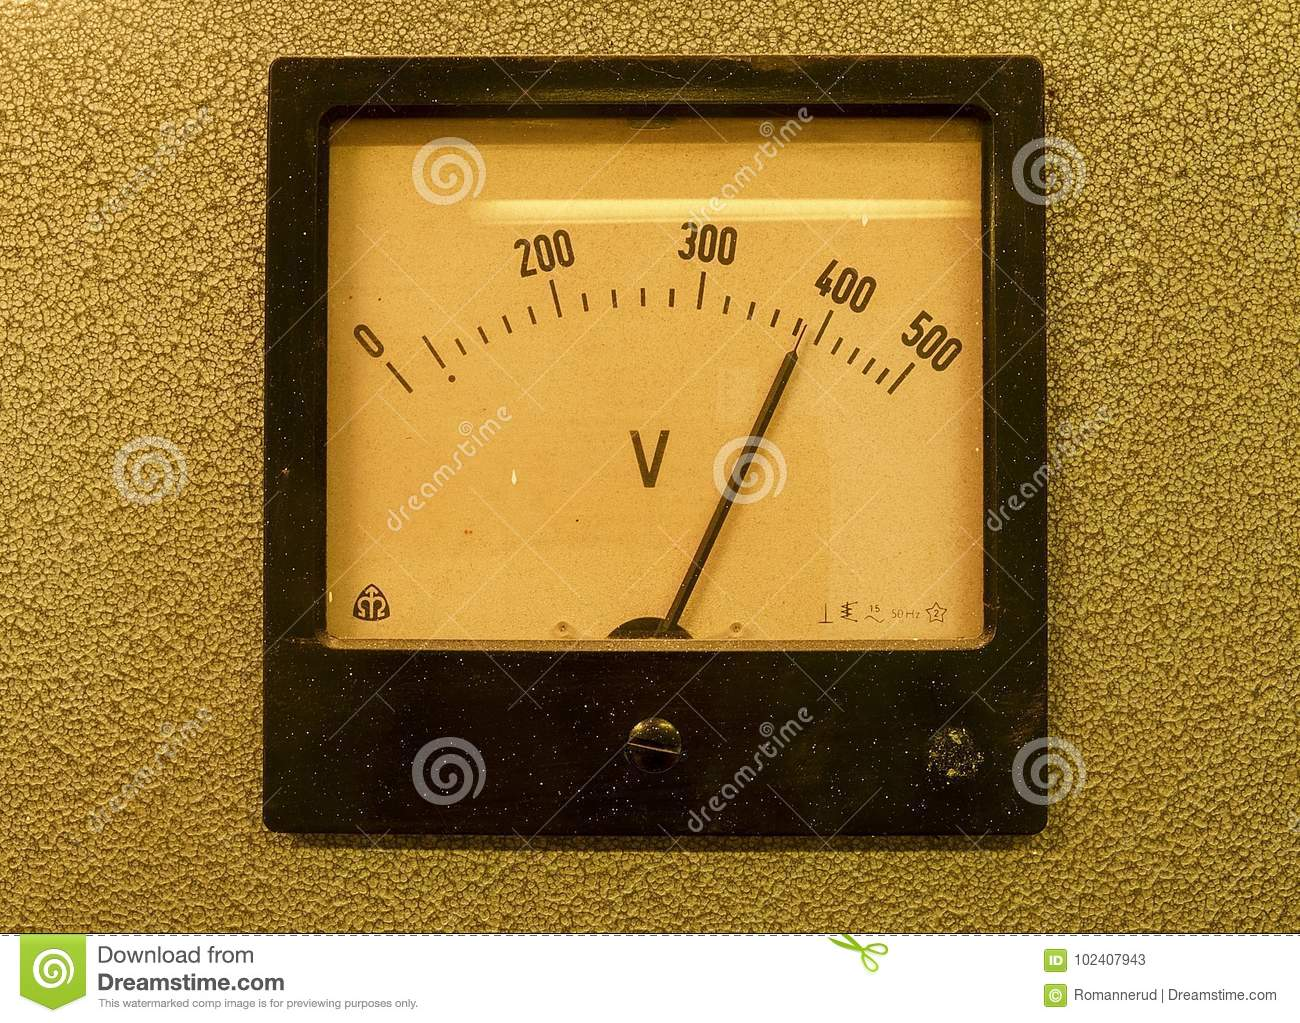 Old analog volt meter. Old measuring instrument with arrow and white scale